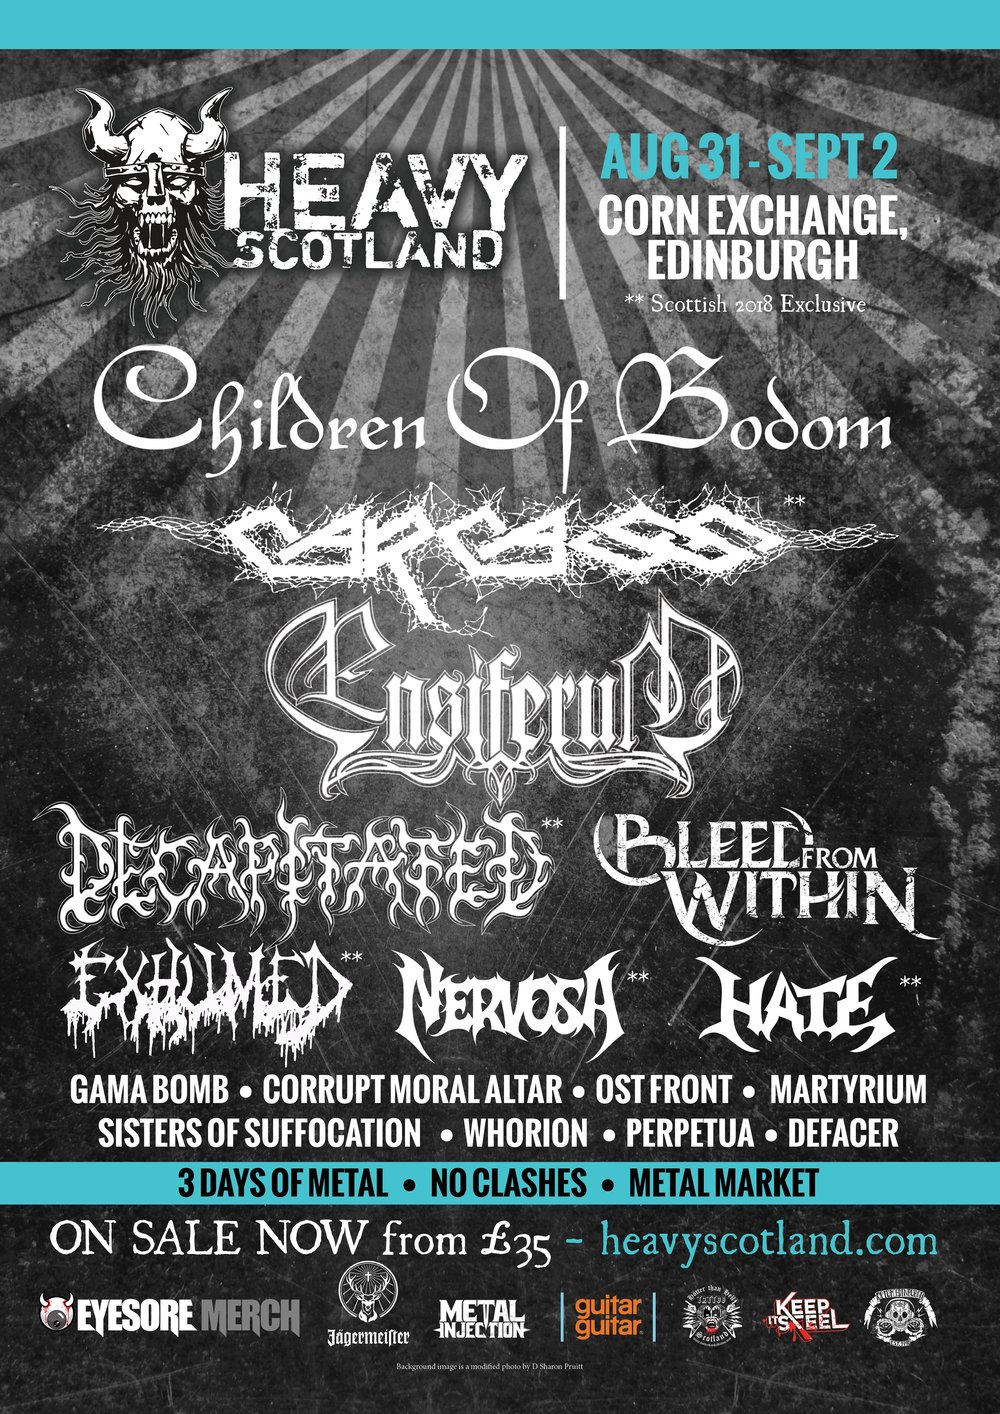 HEAVY SCOTLAND 2018  completes its lineup announcing the final two headliners,  CHILDREN OF BODOM , and  ENSIFERUM . They're joined by  BLEED FROM WITHIN  for the festival at Edinburgh's Corn Exchange, from Friday 31 August to Sunday 02 September. Tickets from only £35.  Full line-up (*Scottish 2018 exclusive):  CHILDREN OF BODOM CARCASS* ENSIFERUM DECAPITATED* BLEED FROM WITHIN EXHUMED* NERVOSA* HATE* GAMA BOMB*  CORRUPT MORAL ALTAR OST+FRONT* MARTRYIUM* SISTERS OF SUFFOCATION*  WHORION* PERPETUA   DEFACER    Purchase tickets from:  http://www.heavyscotland.com/    Under-18 tickets are available now at just £35 and student Weekend tickets at just £50.  The festival have also announced their partnership with Haymarket Hub and Code Hostel. Buy the hotel ticket on  http://www.heavyscotland.com/hotel-deals/  and you receive a discount code for the weekend.  The news follows a highly impressive first year from  Heavy Scotland , placing Edinburgh on the international metal map. Headliners  Behemoth  and  Arch Enemy  topped a stellar bill, which also included the likes of  Fleshgod Apocalypse ,  Destruction ,  Finntroll ,  Havok  and more. Garnering local and international acclaim,  Heavy Scotland  is fast becoming Scotland's national heavy metal festival, and is the largest of its kind in the country's capital of Edinburgh. Borne from a love of all things loud and with a passion for the local scene,  Heavy Scotland  is an event deserving of the attention so far received.